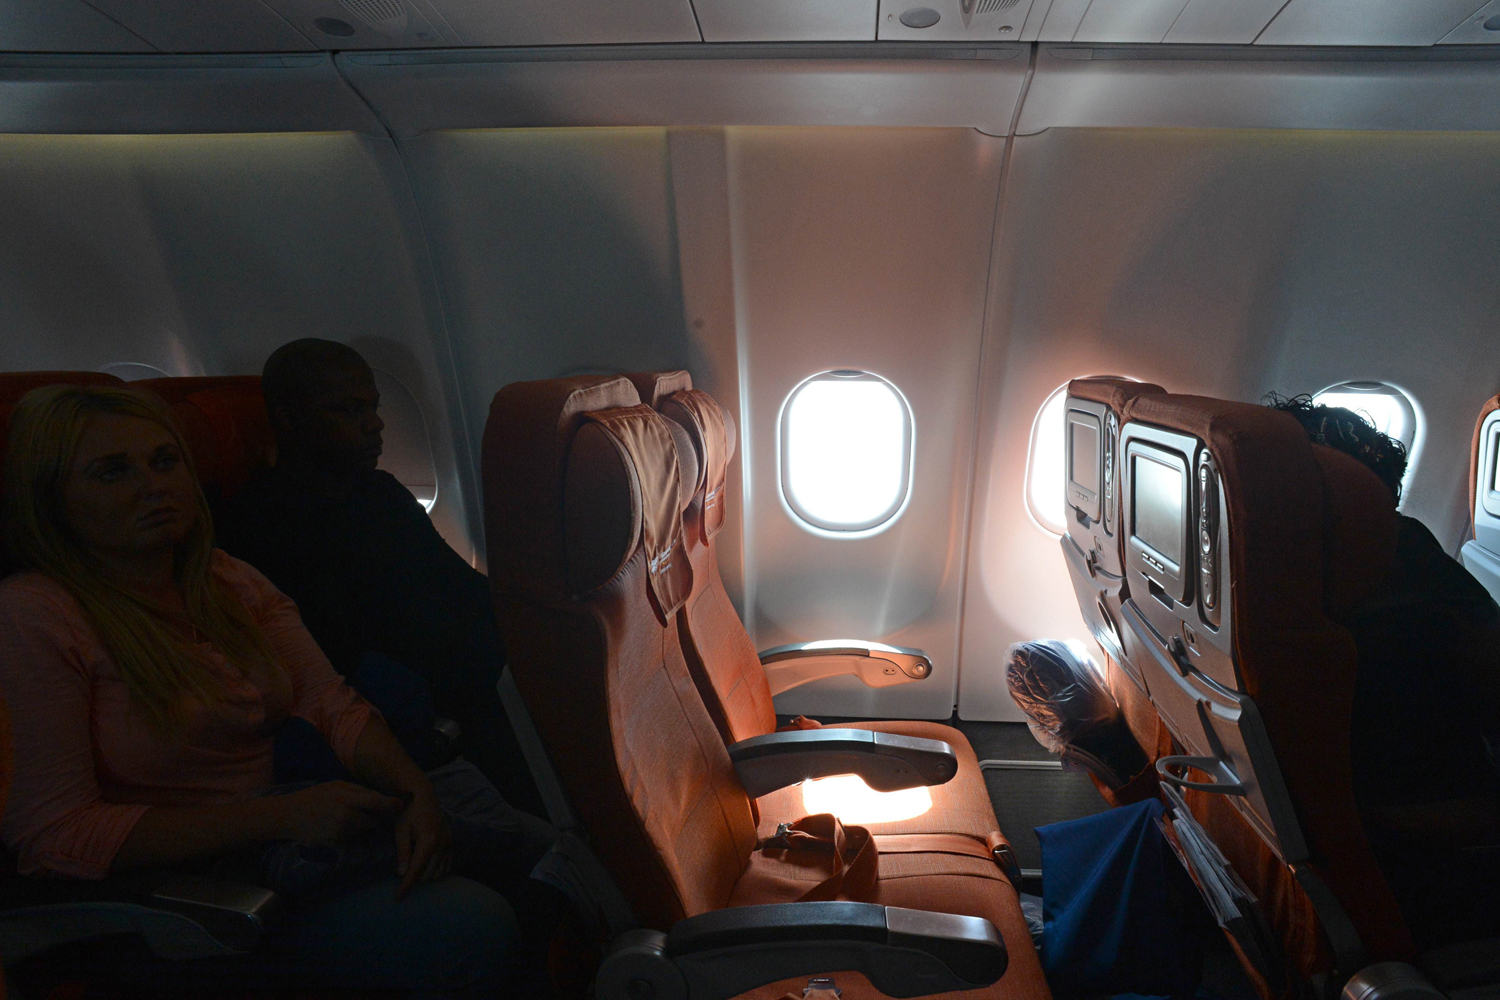 June 24, 2013. A picture taken in Moscow Sheremetyevo airport aboard a plane of Aeroflot flight from Moscow to Havana shows the empty window seat 17A, which fugitive U.S. intelligence leaker Edward Snowden was scheduled to occupy according to Aeroflot's flight records.